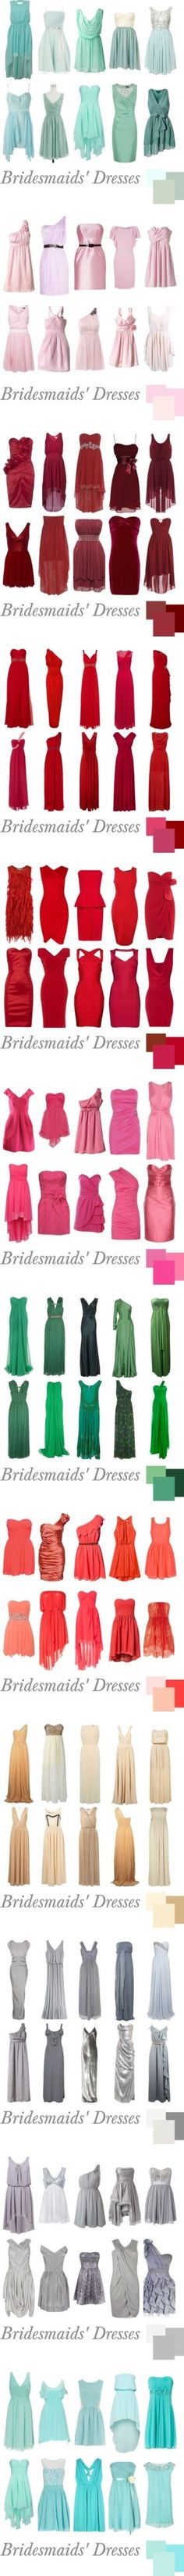 Bridesmaid dresses color and style chart